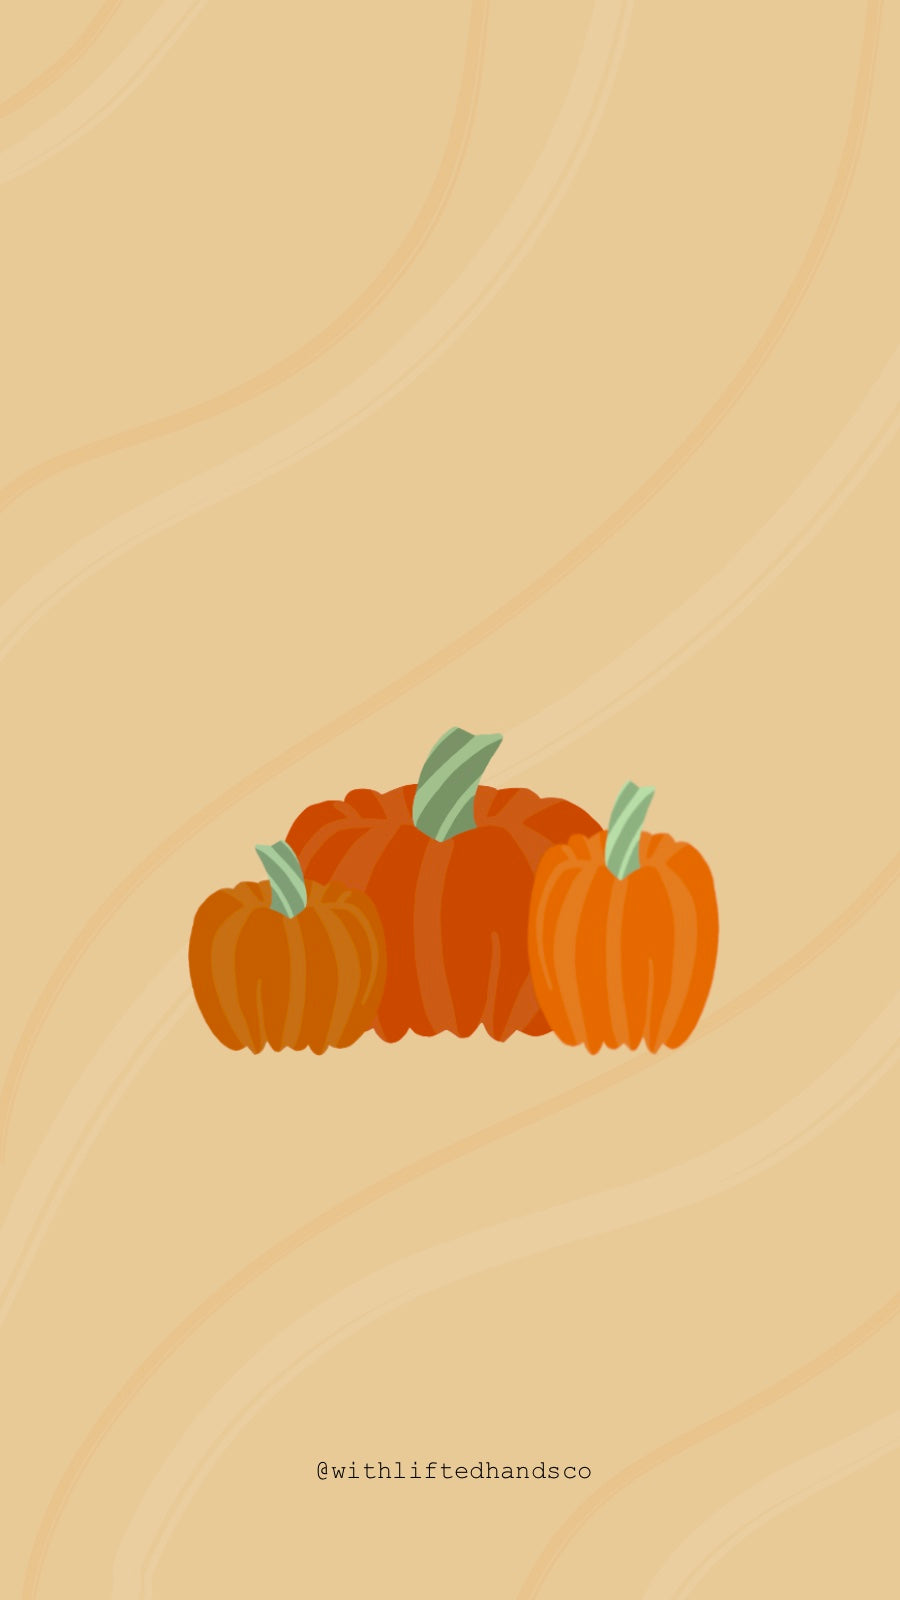 Pumpkins Faith phone wallpapers by with lifted hands co